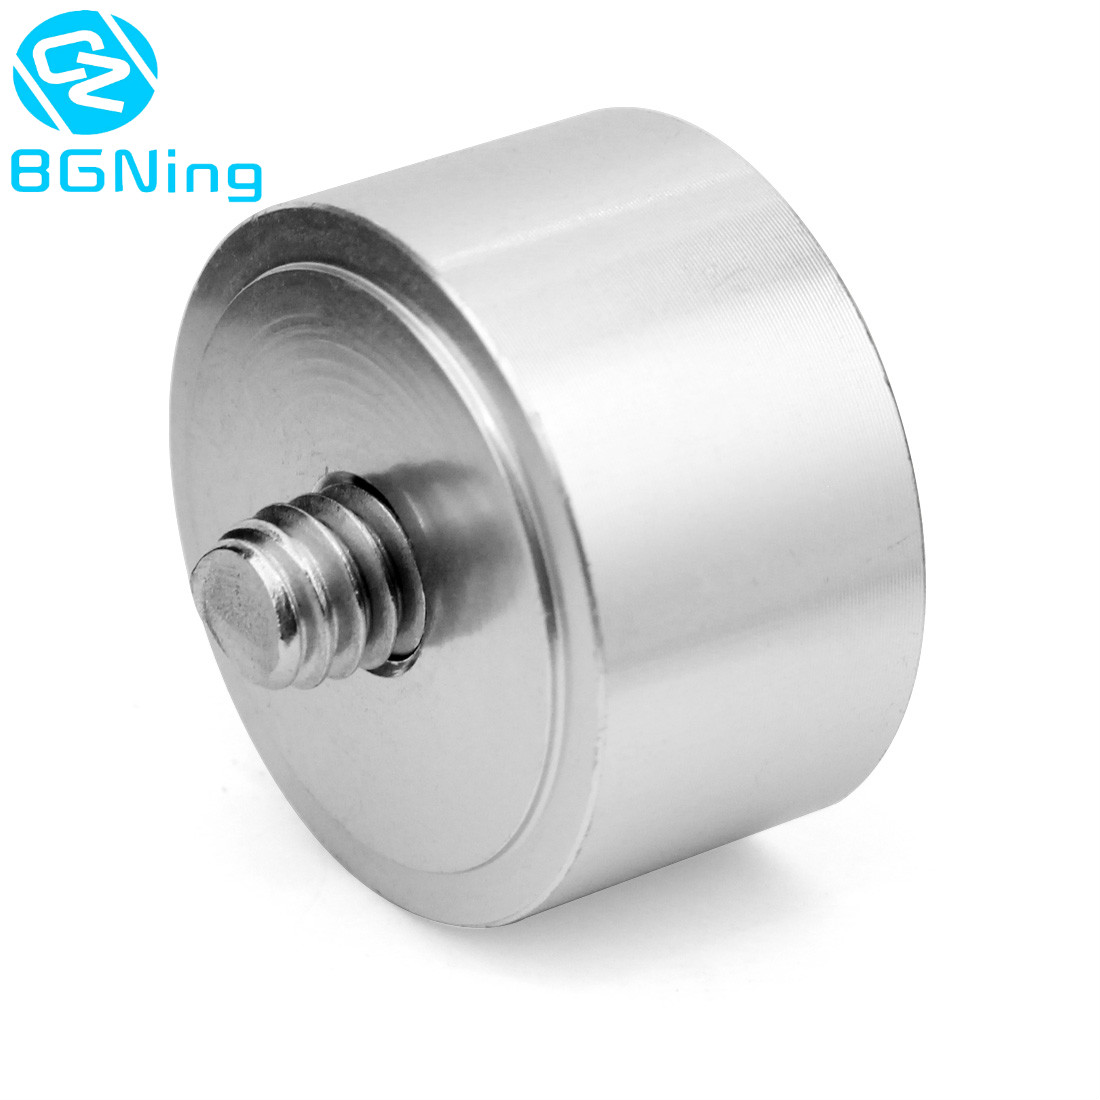 Aluminum <font><b>1</b></font>/4 Adapter Screws Tripod Adapter for Extension Rod for <font><b>G6</b></font> G5 SPG Live G4 Series Handheld Gimbal for Sport Camera image